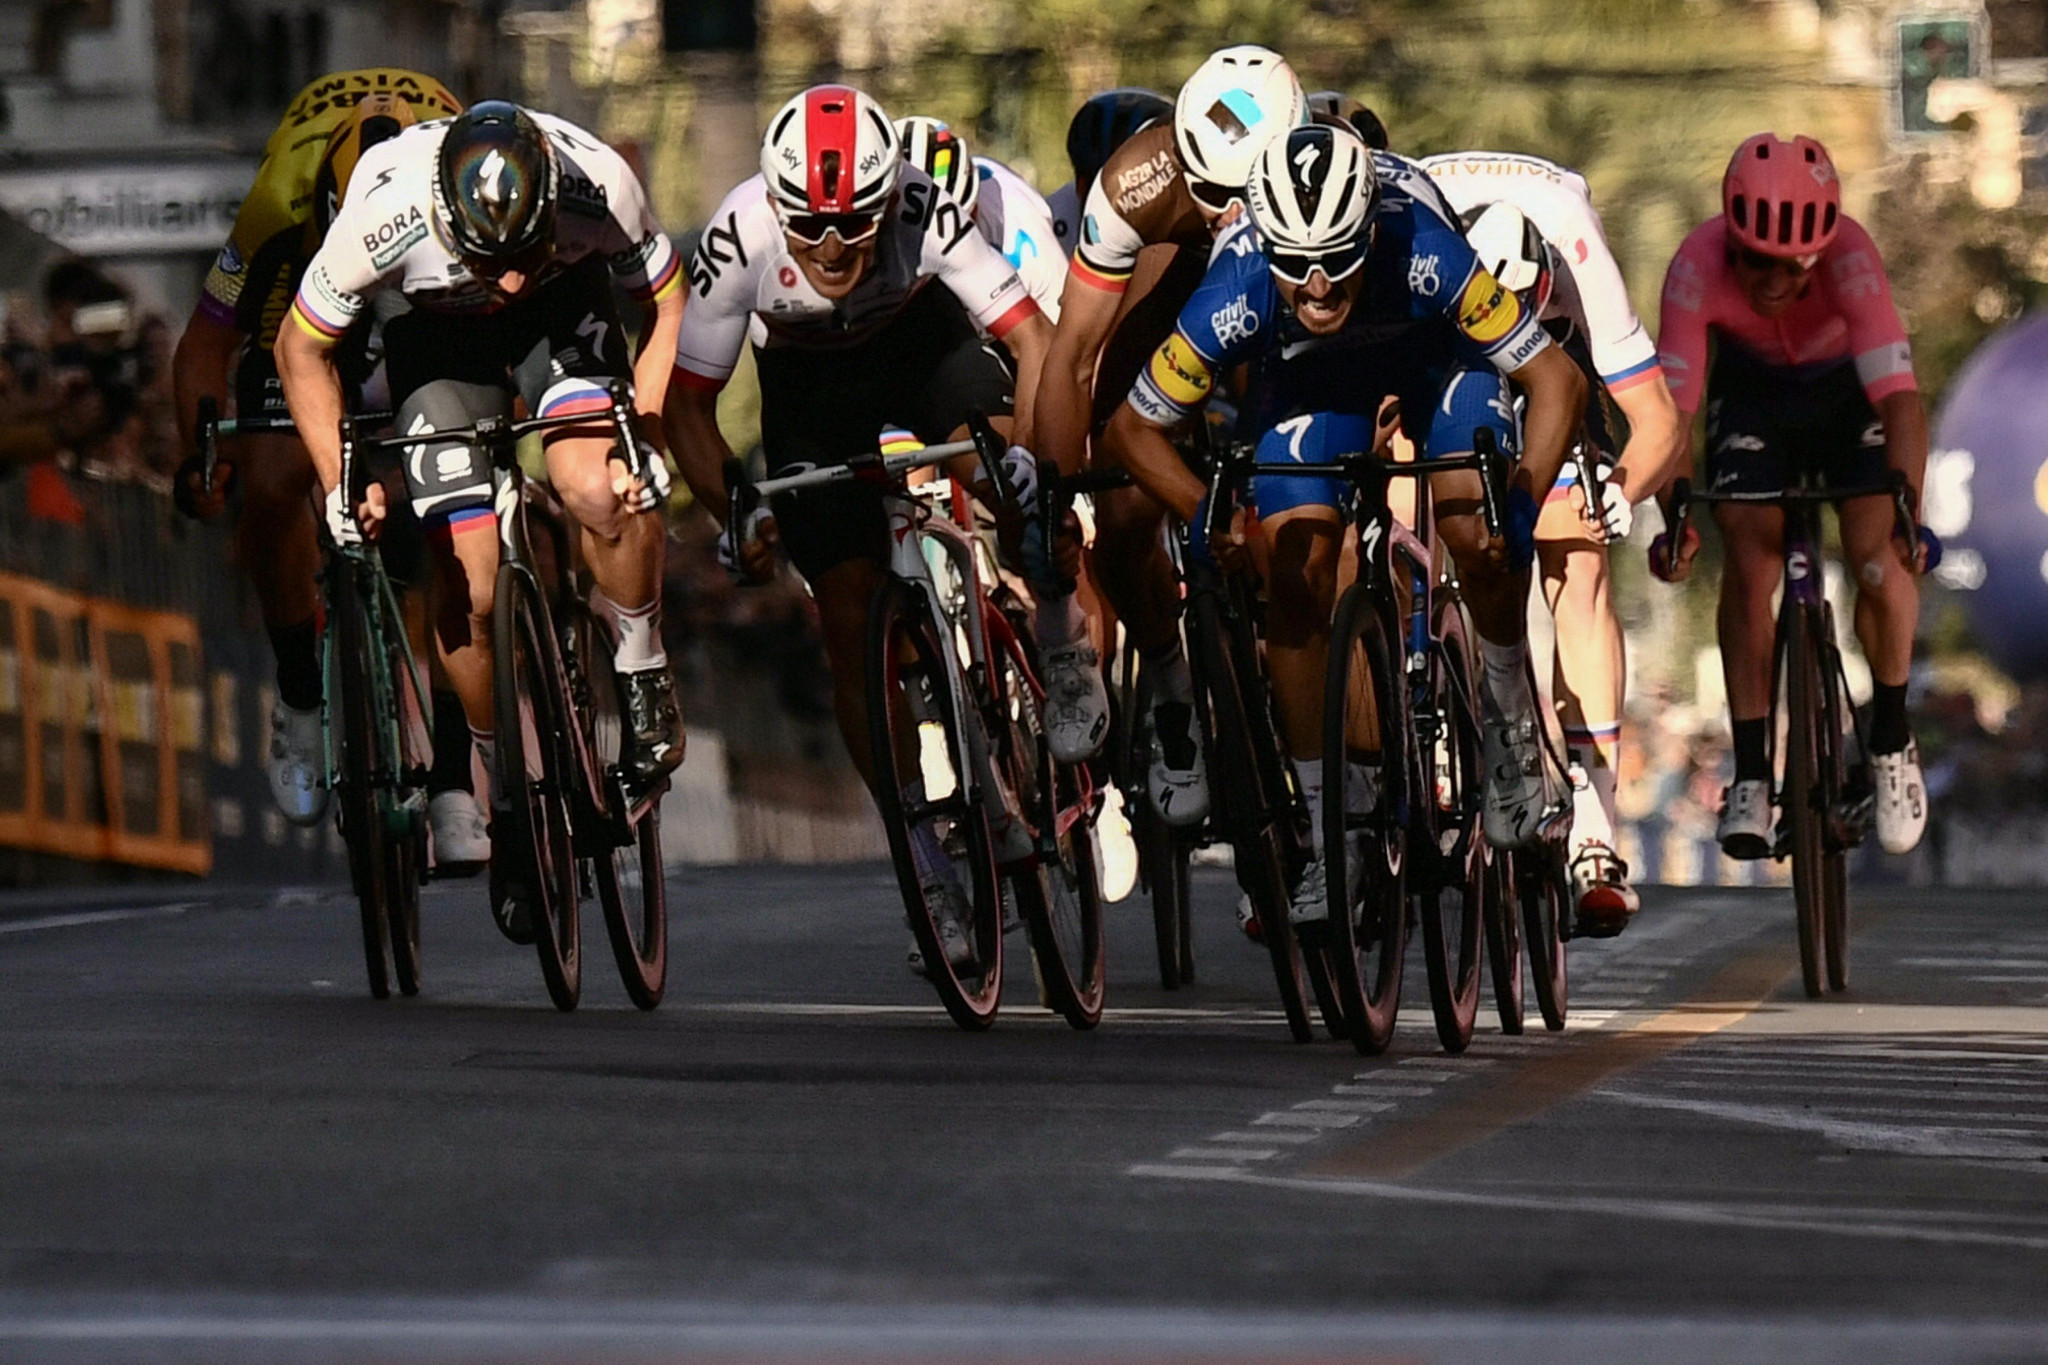 Julian Alaphilippe triumphed in a close sprint finish ©Getty Images